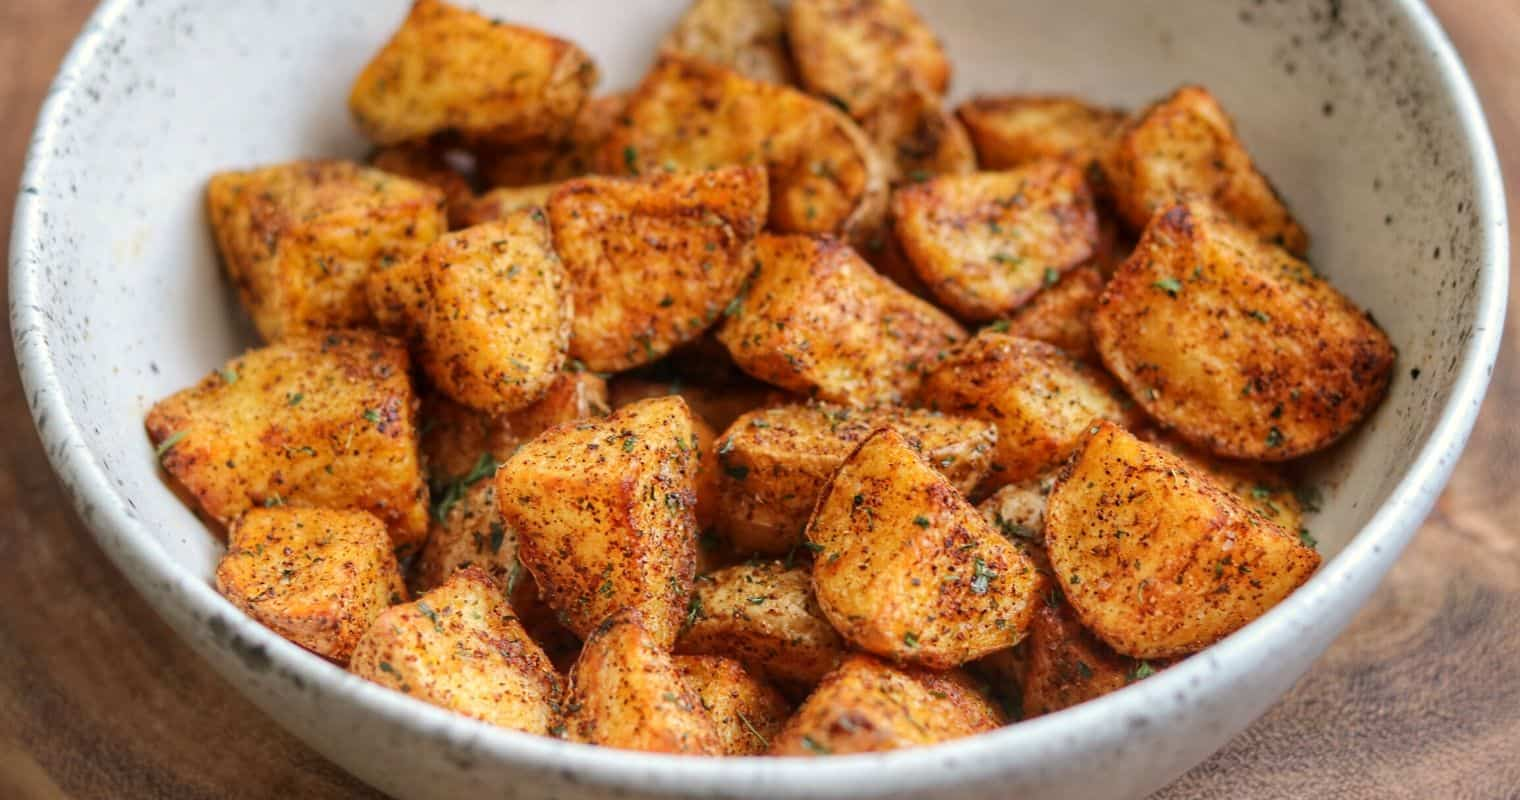 Mexican potatoes in a white bowl